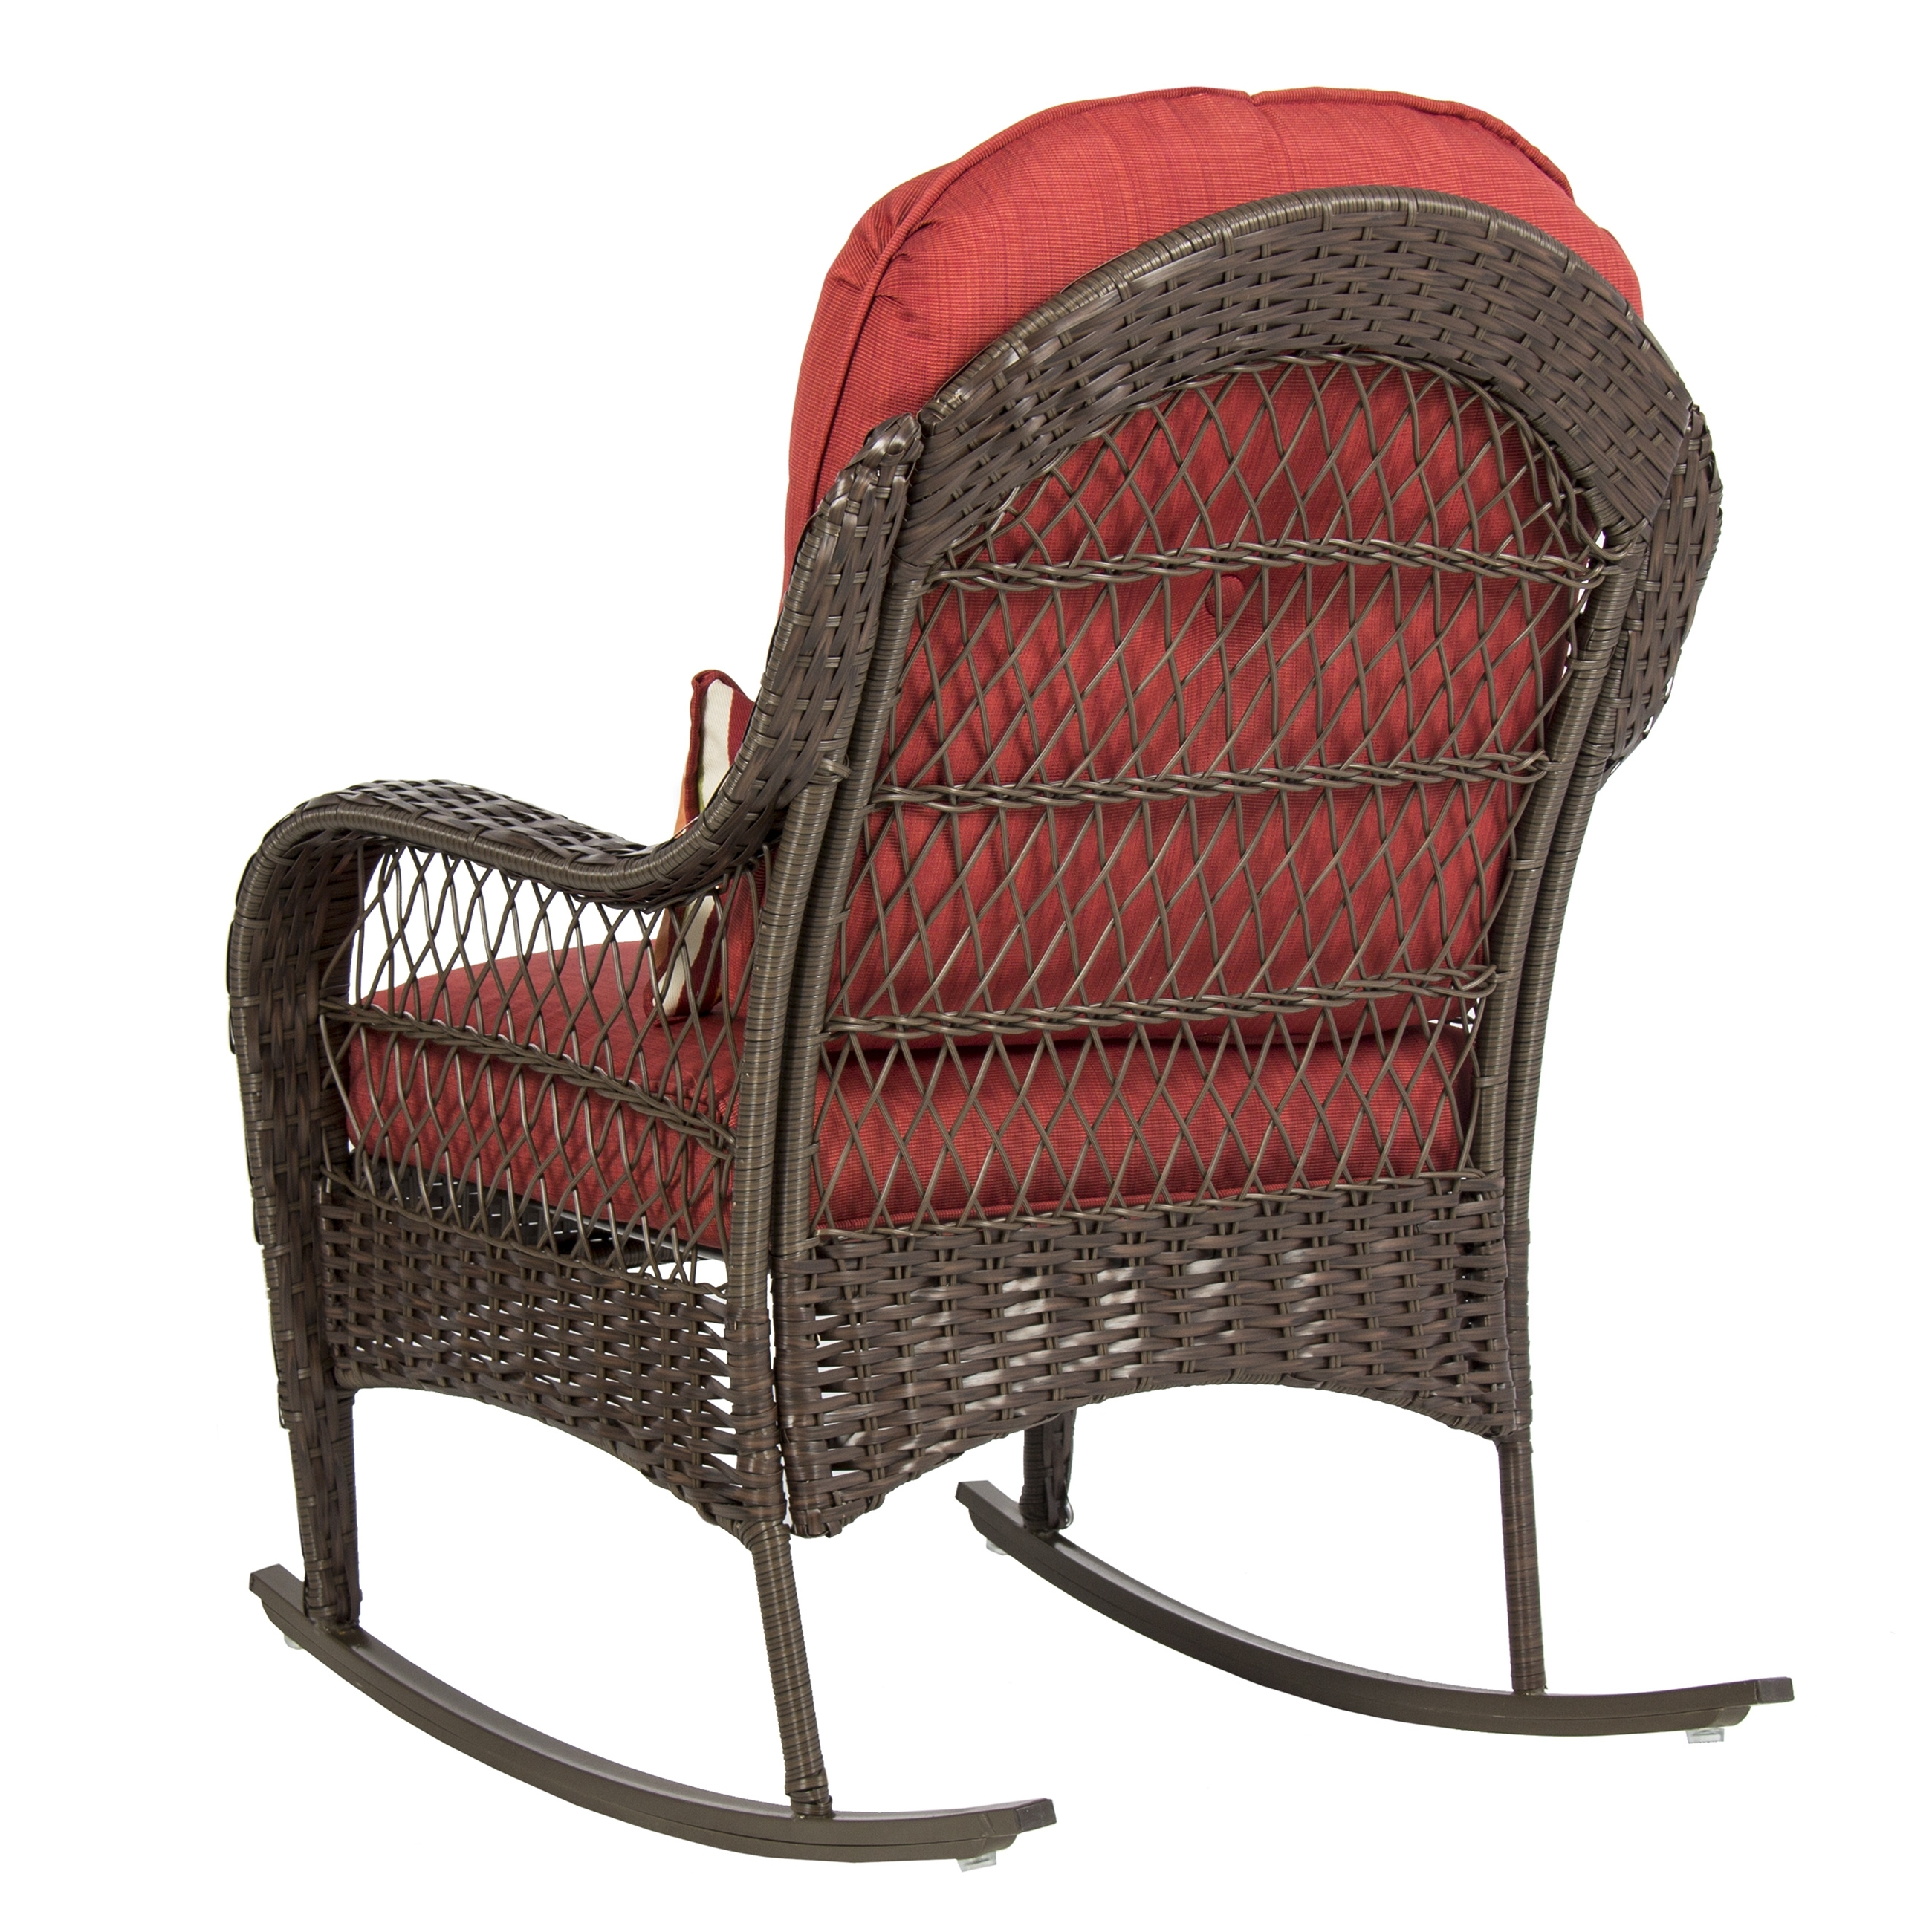 Outdoor Wicker Rocking Chairs With Cushions Within Well Known Best Choice Products Wicker Rocking Chair Patio Porch Deck Furniture (View 16 of 20)